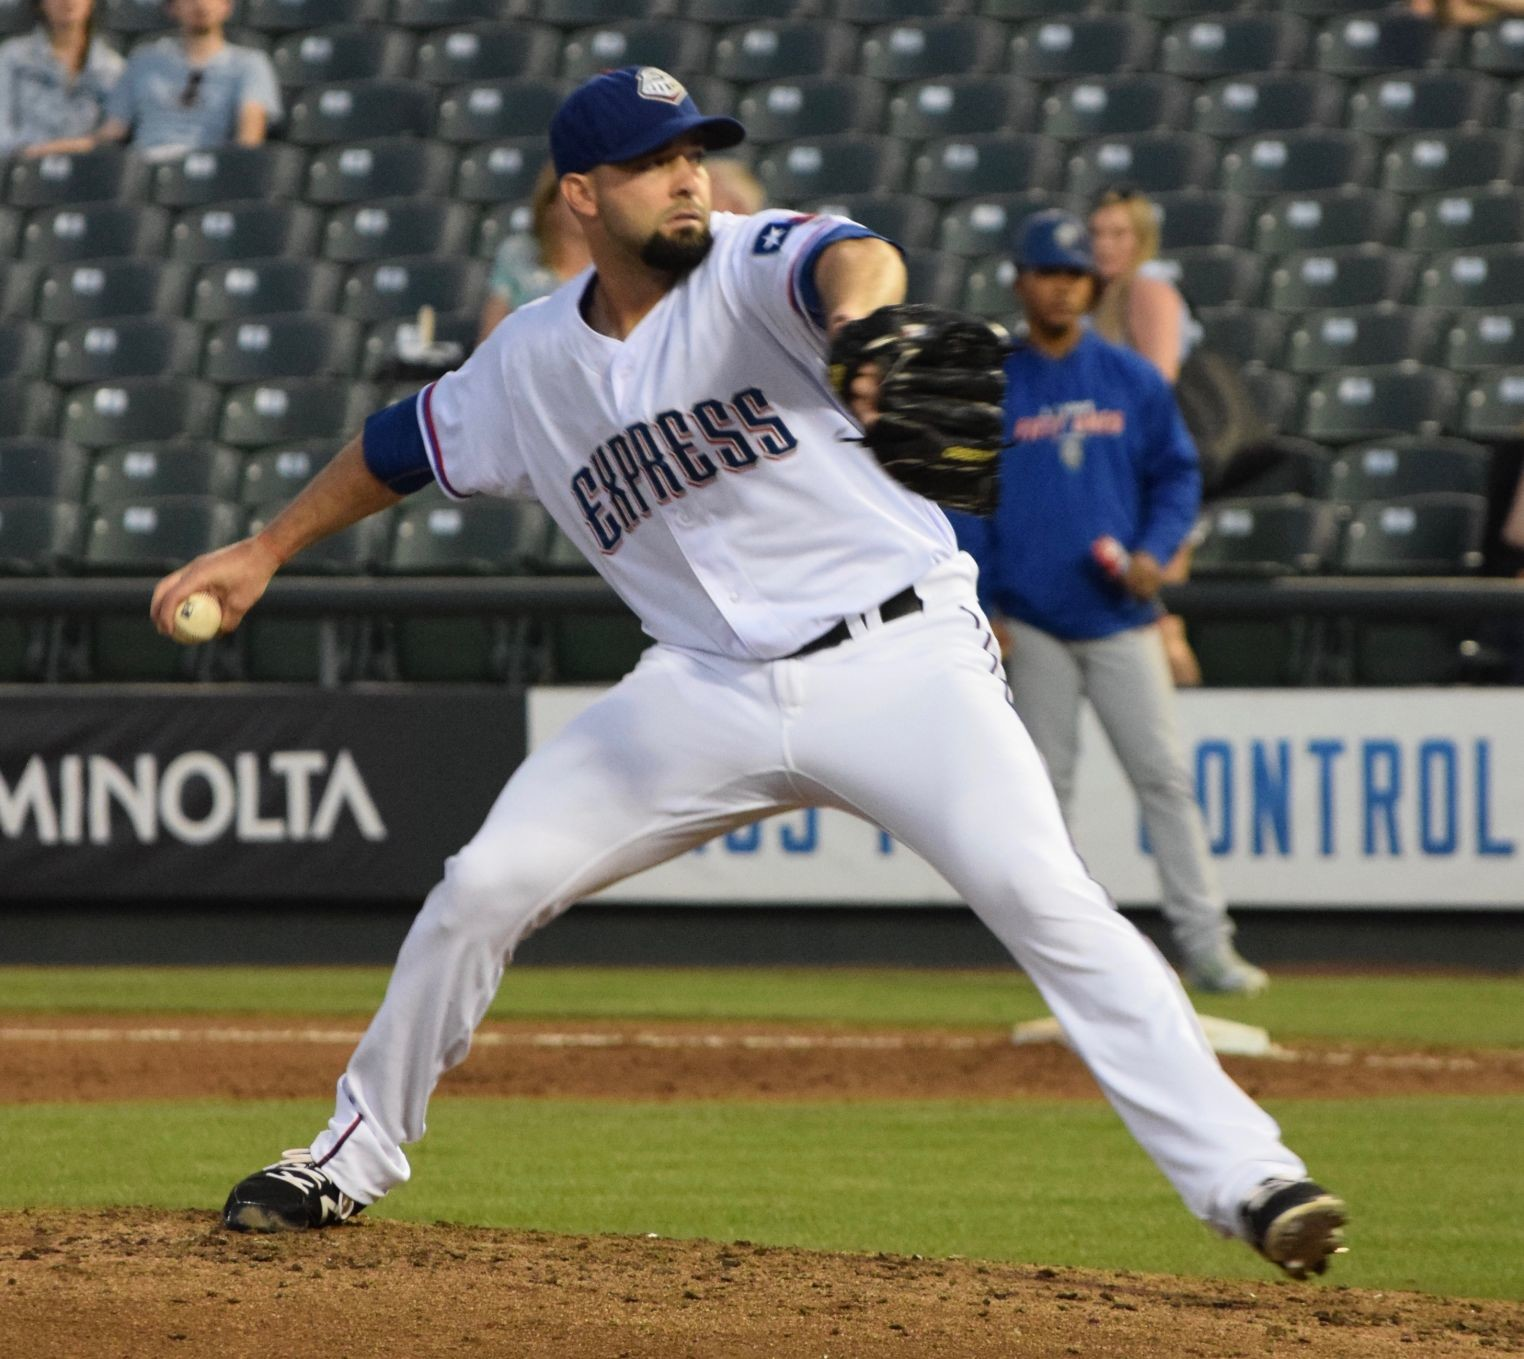 Dillon Gee pitched six scoreless innings against his former team, allowing no runs on two hits with nine strikeouts and the Express beat the Las Vegas 51s 3-1 Wednesday night at Dell Diamond.